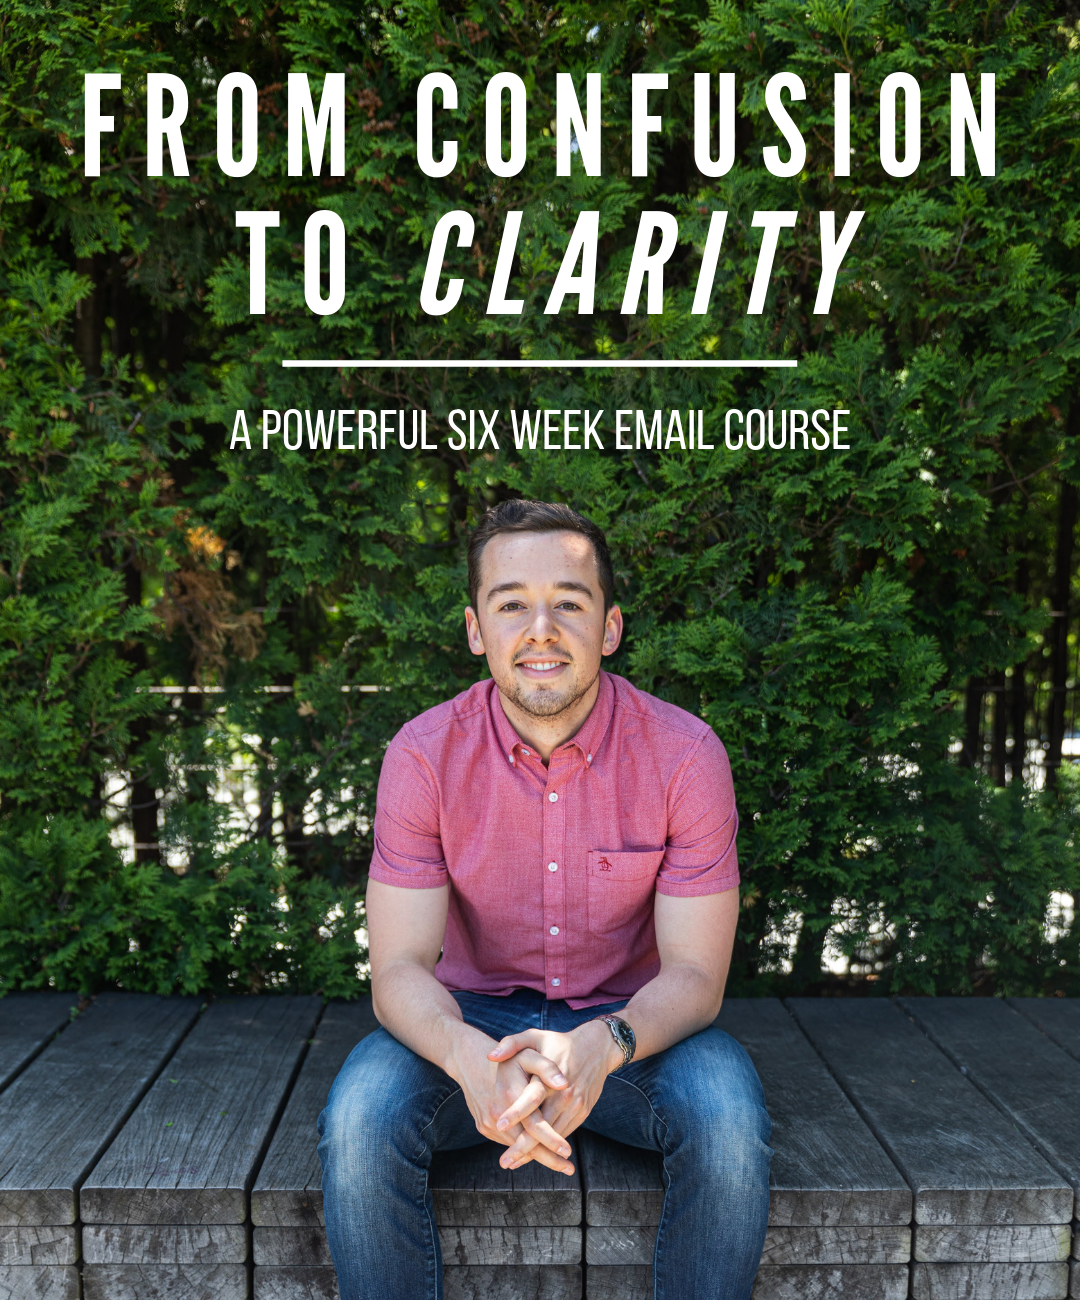 Feeling Stuck? - From Confusion to Clarity is a six week email course designed to take you from feeling stuck, lost, and confused to feeling empowered, clear, and back in the driver's seat of your life.